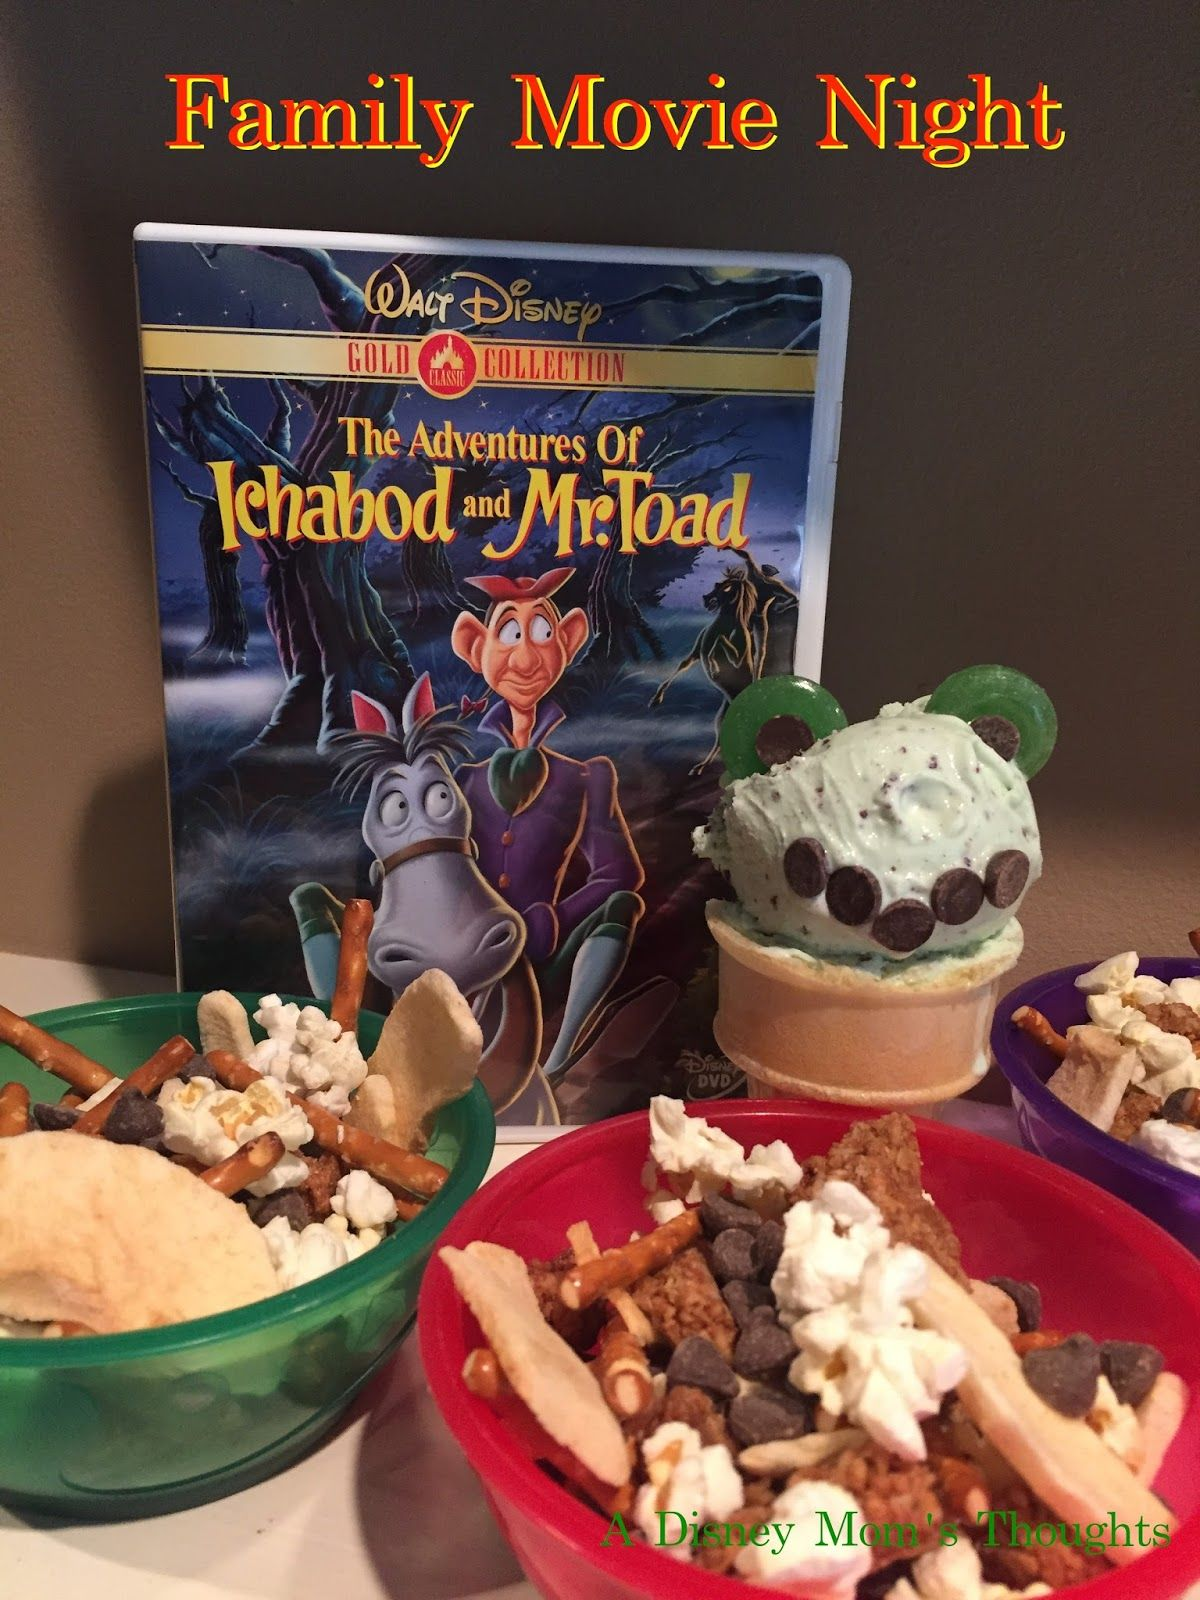 The Adventures of Ichabod and Mr. Toad Family Movie Night